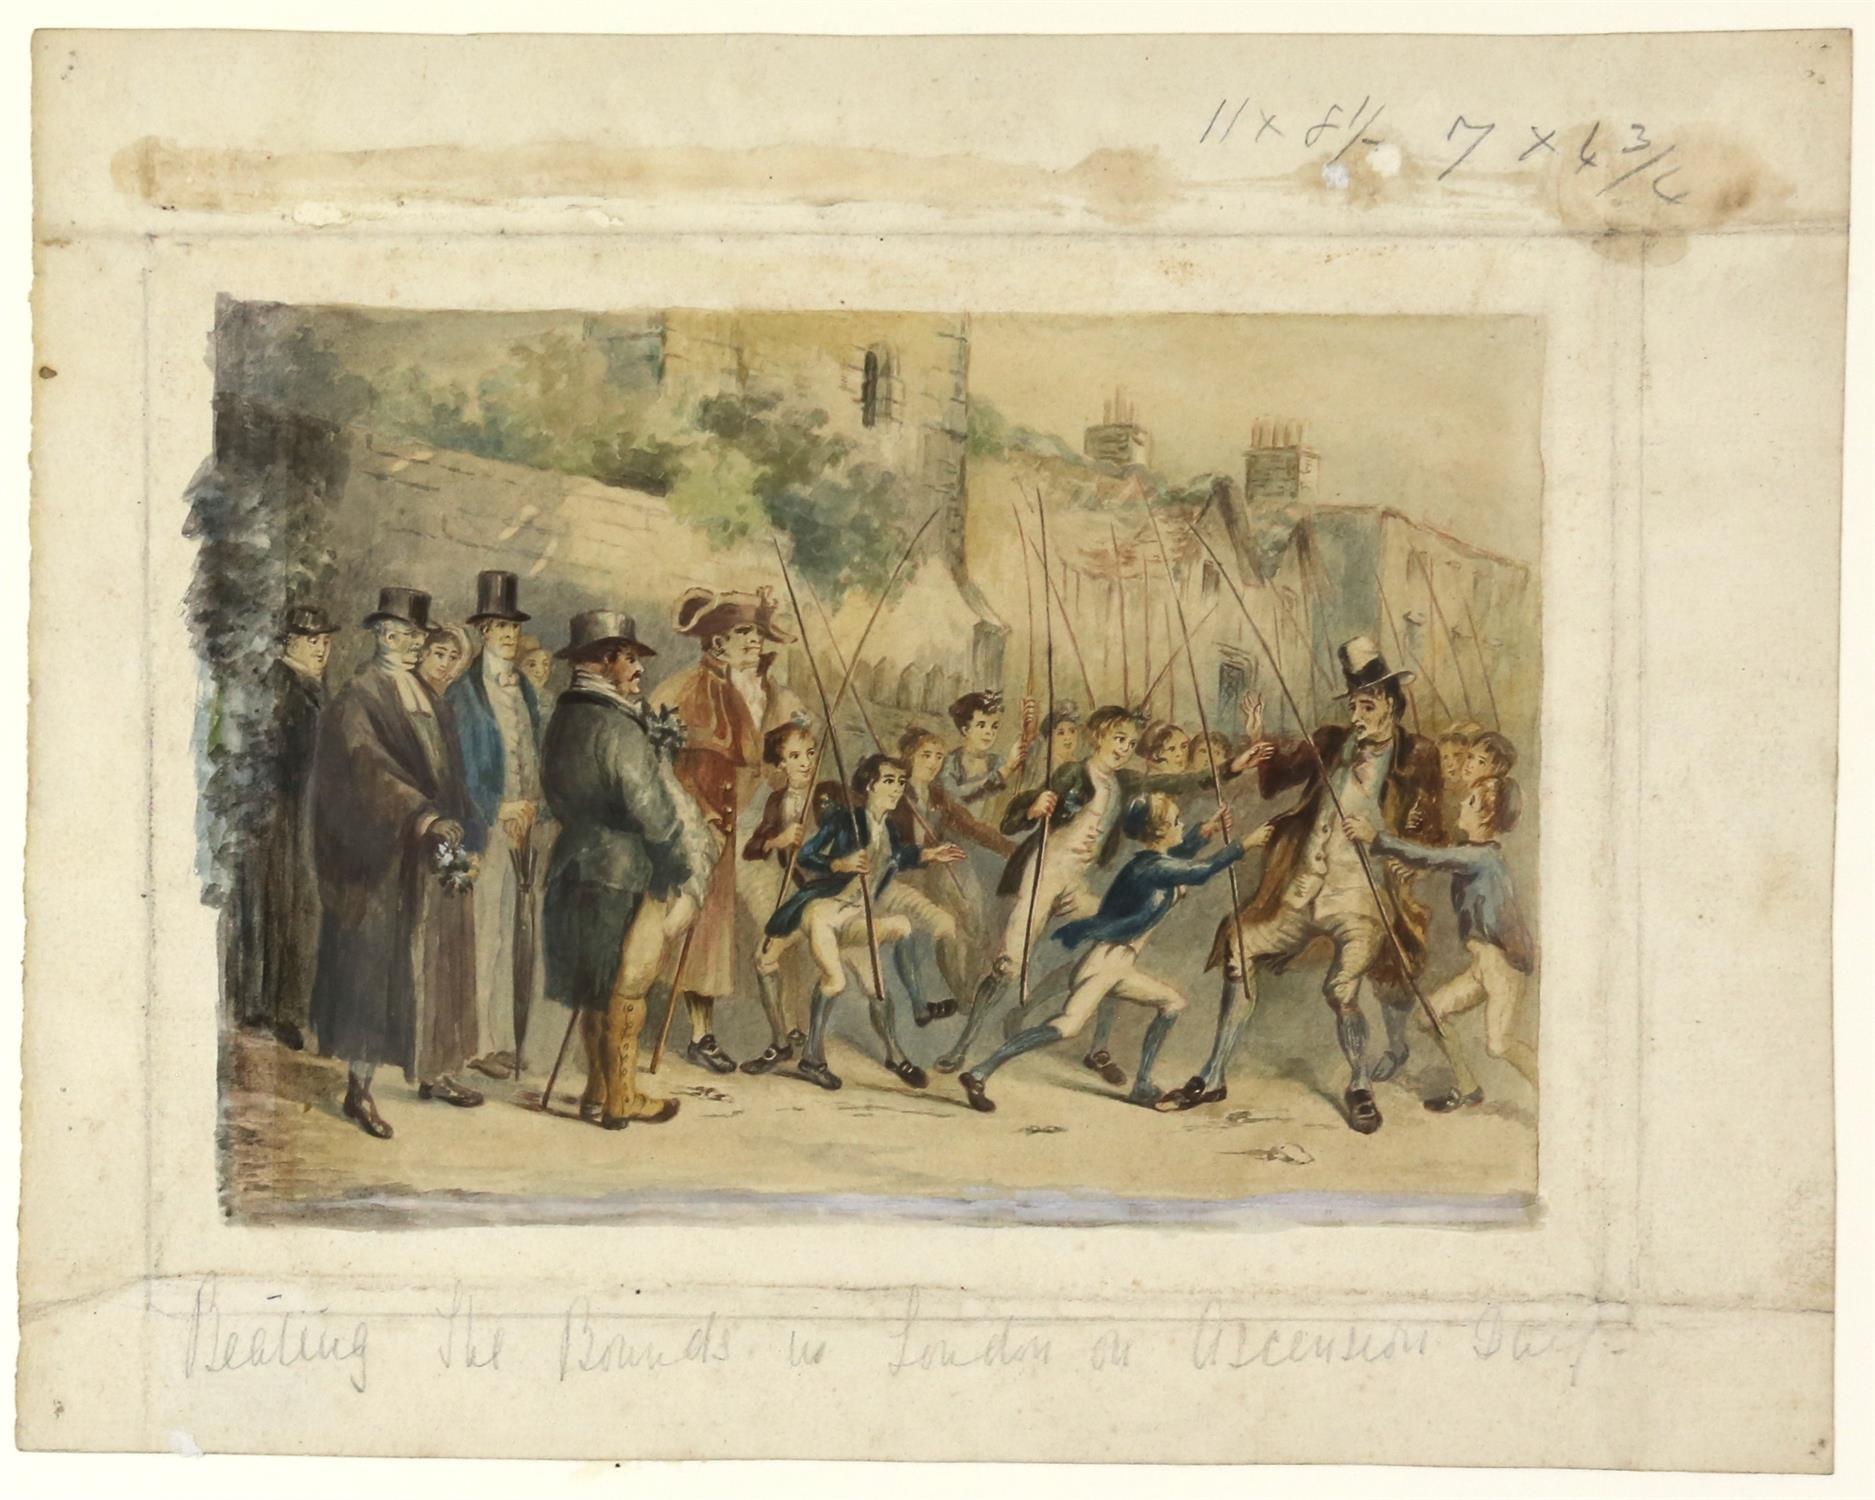 Style of George Cruikshank, 19th century, 'Beating the bounds in London on Ascension Day',